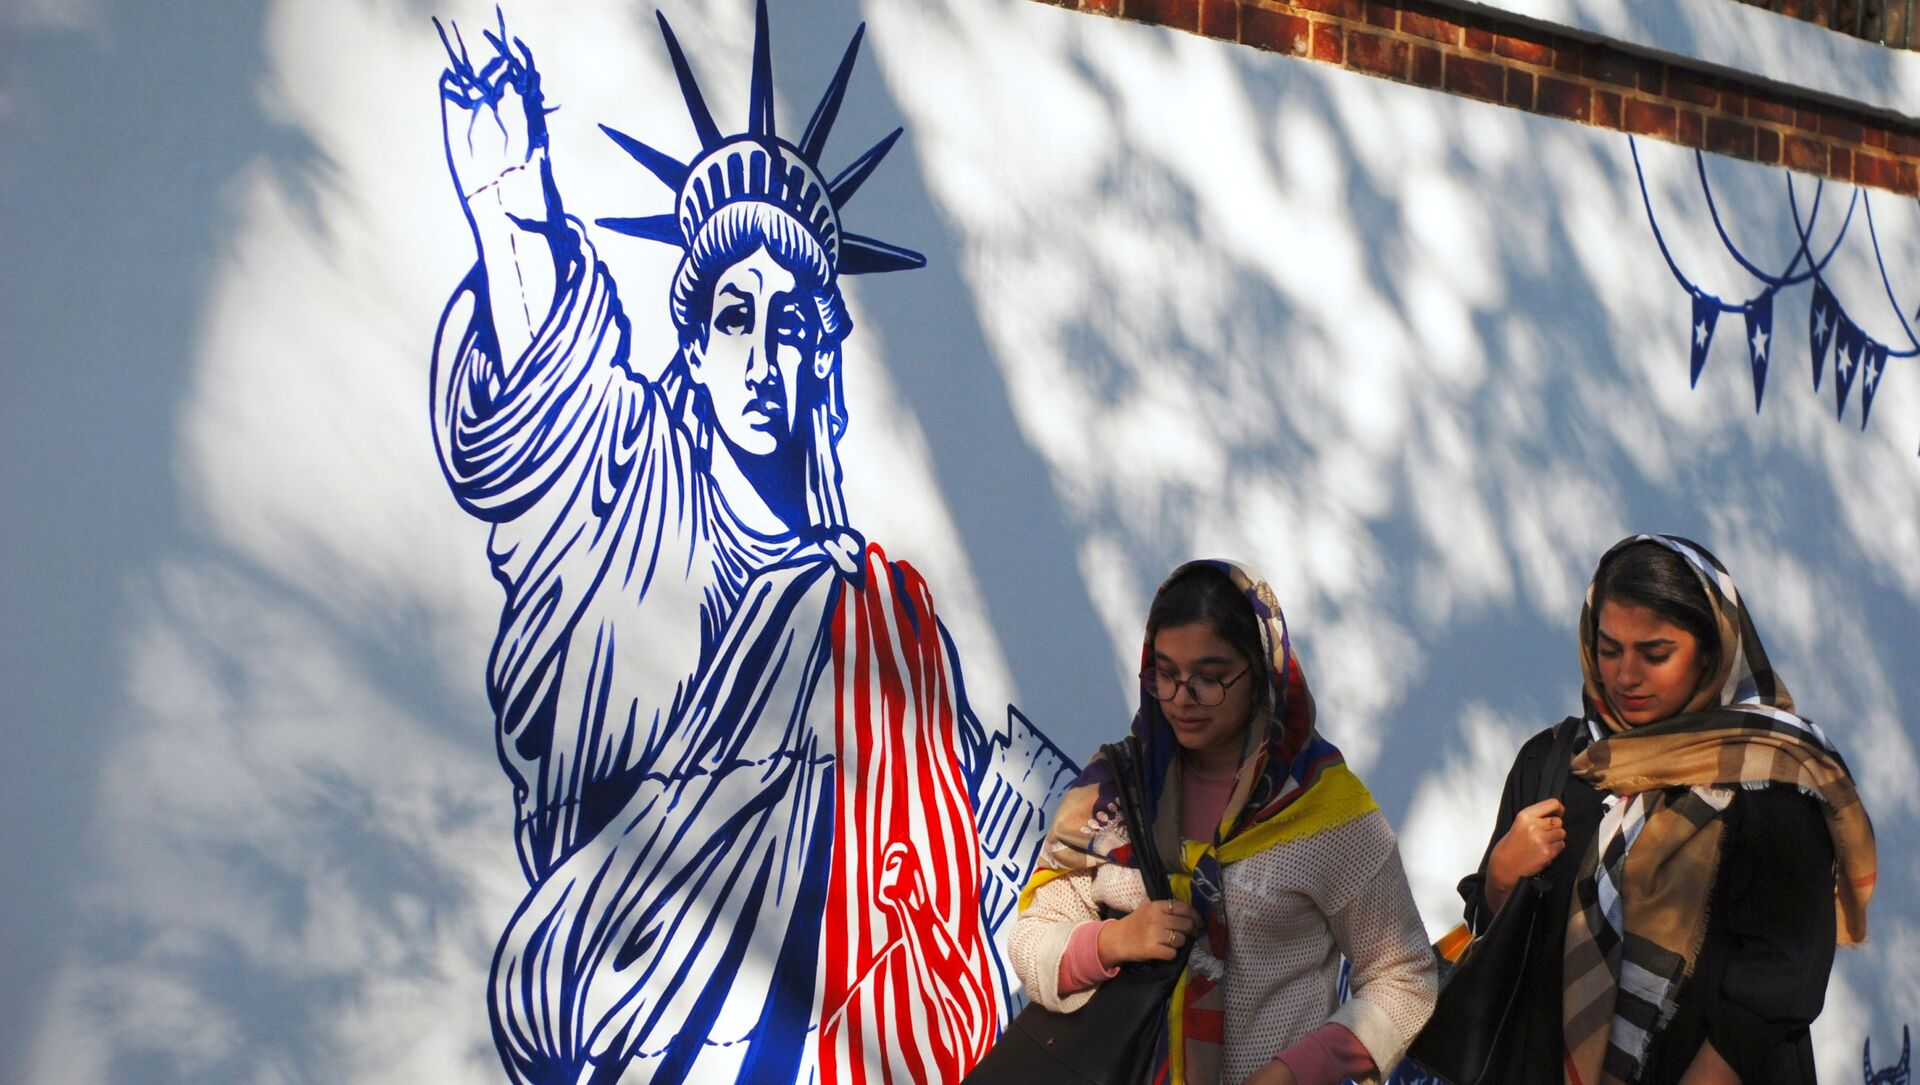 Women walk by a mural on the walls of the former US Embassy compound in Tehran. File photo. - Sputnik International, 1920, 04.09.2021